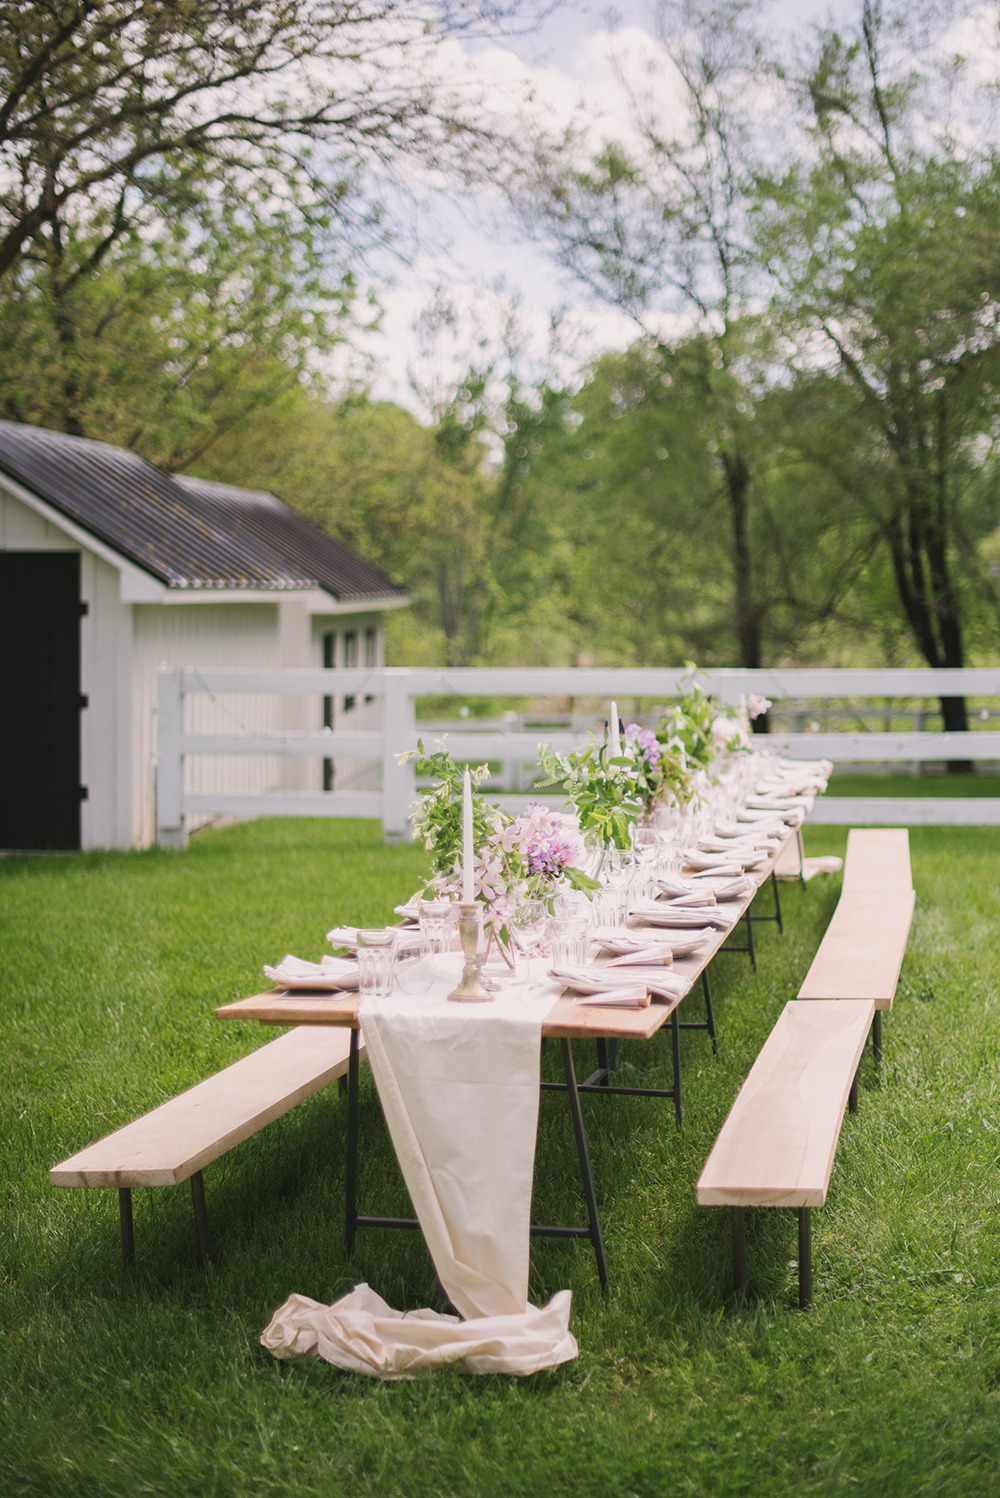 farm-outdoor-party-large-benches